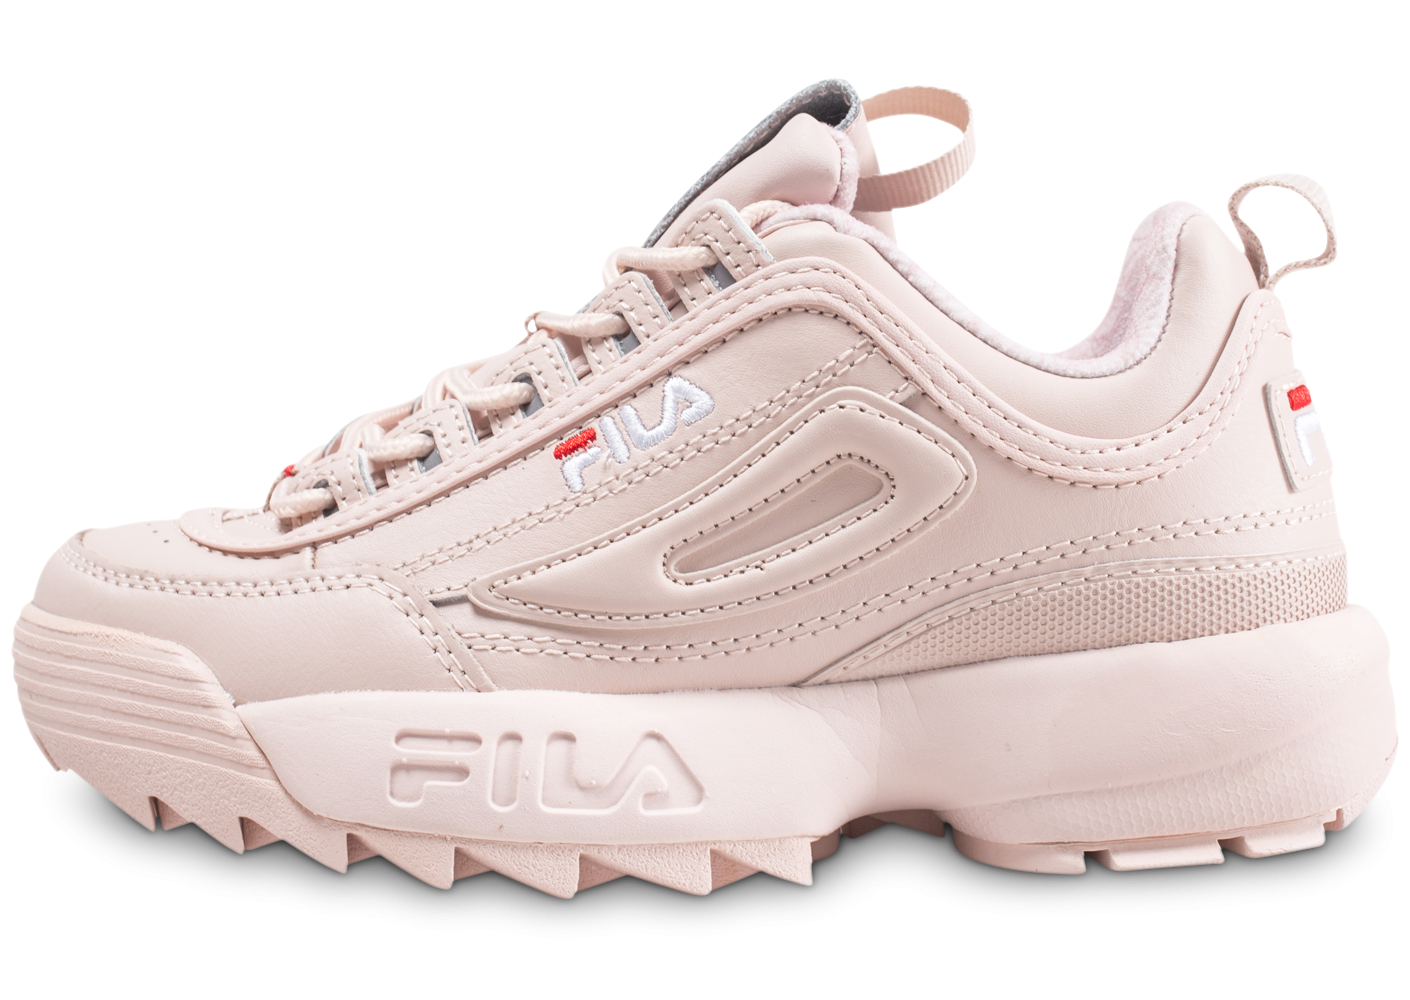 fila rose pale